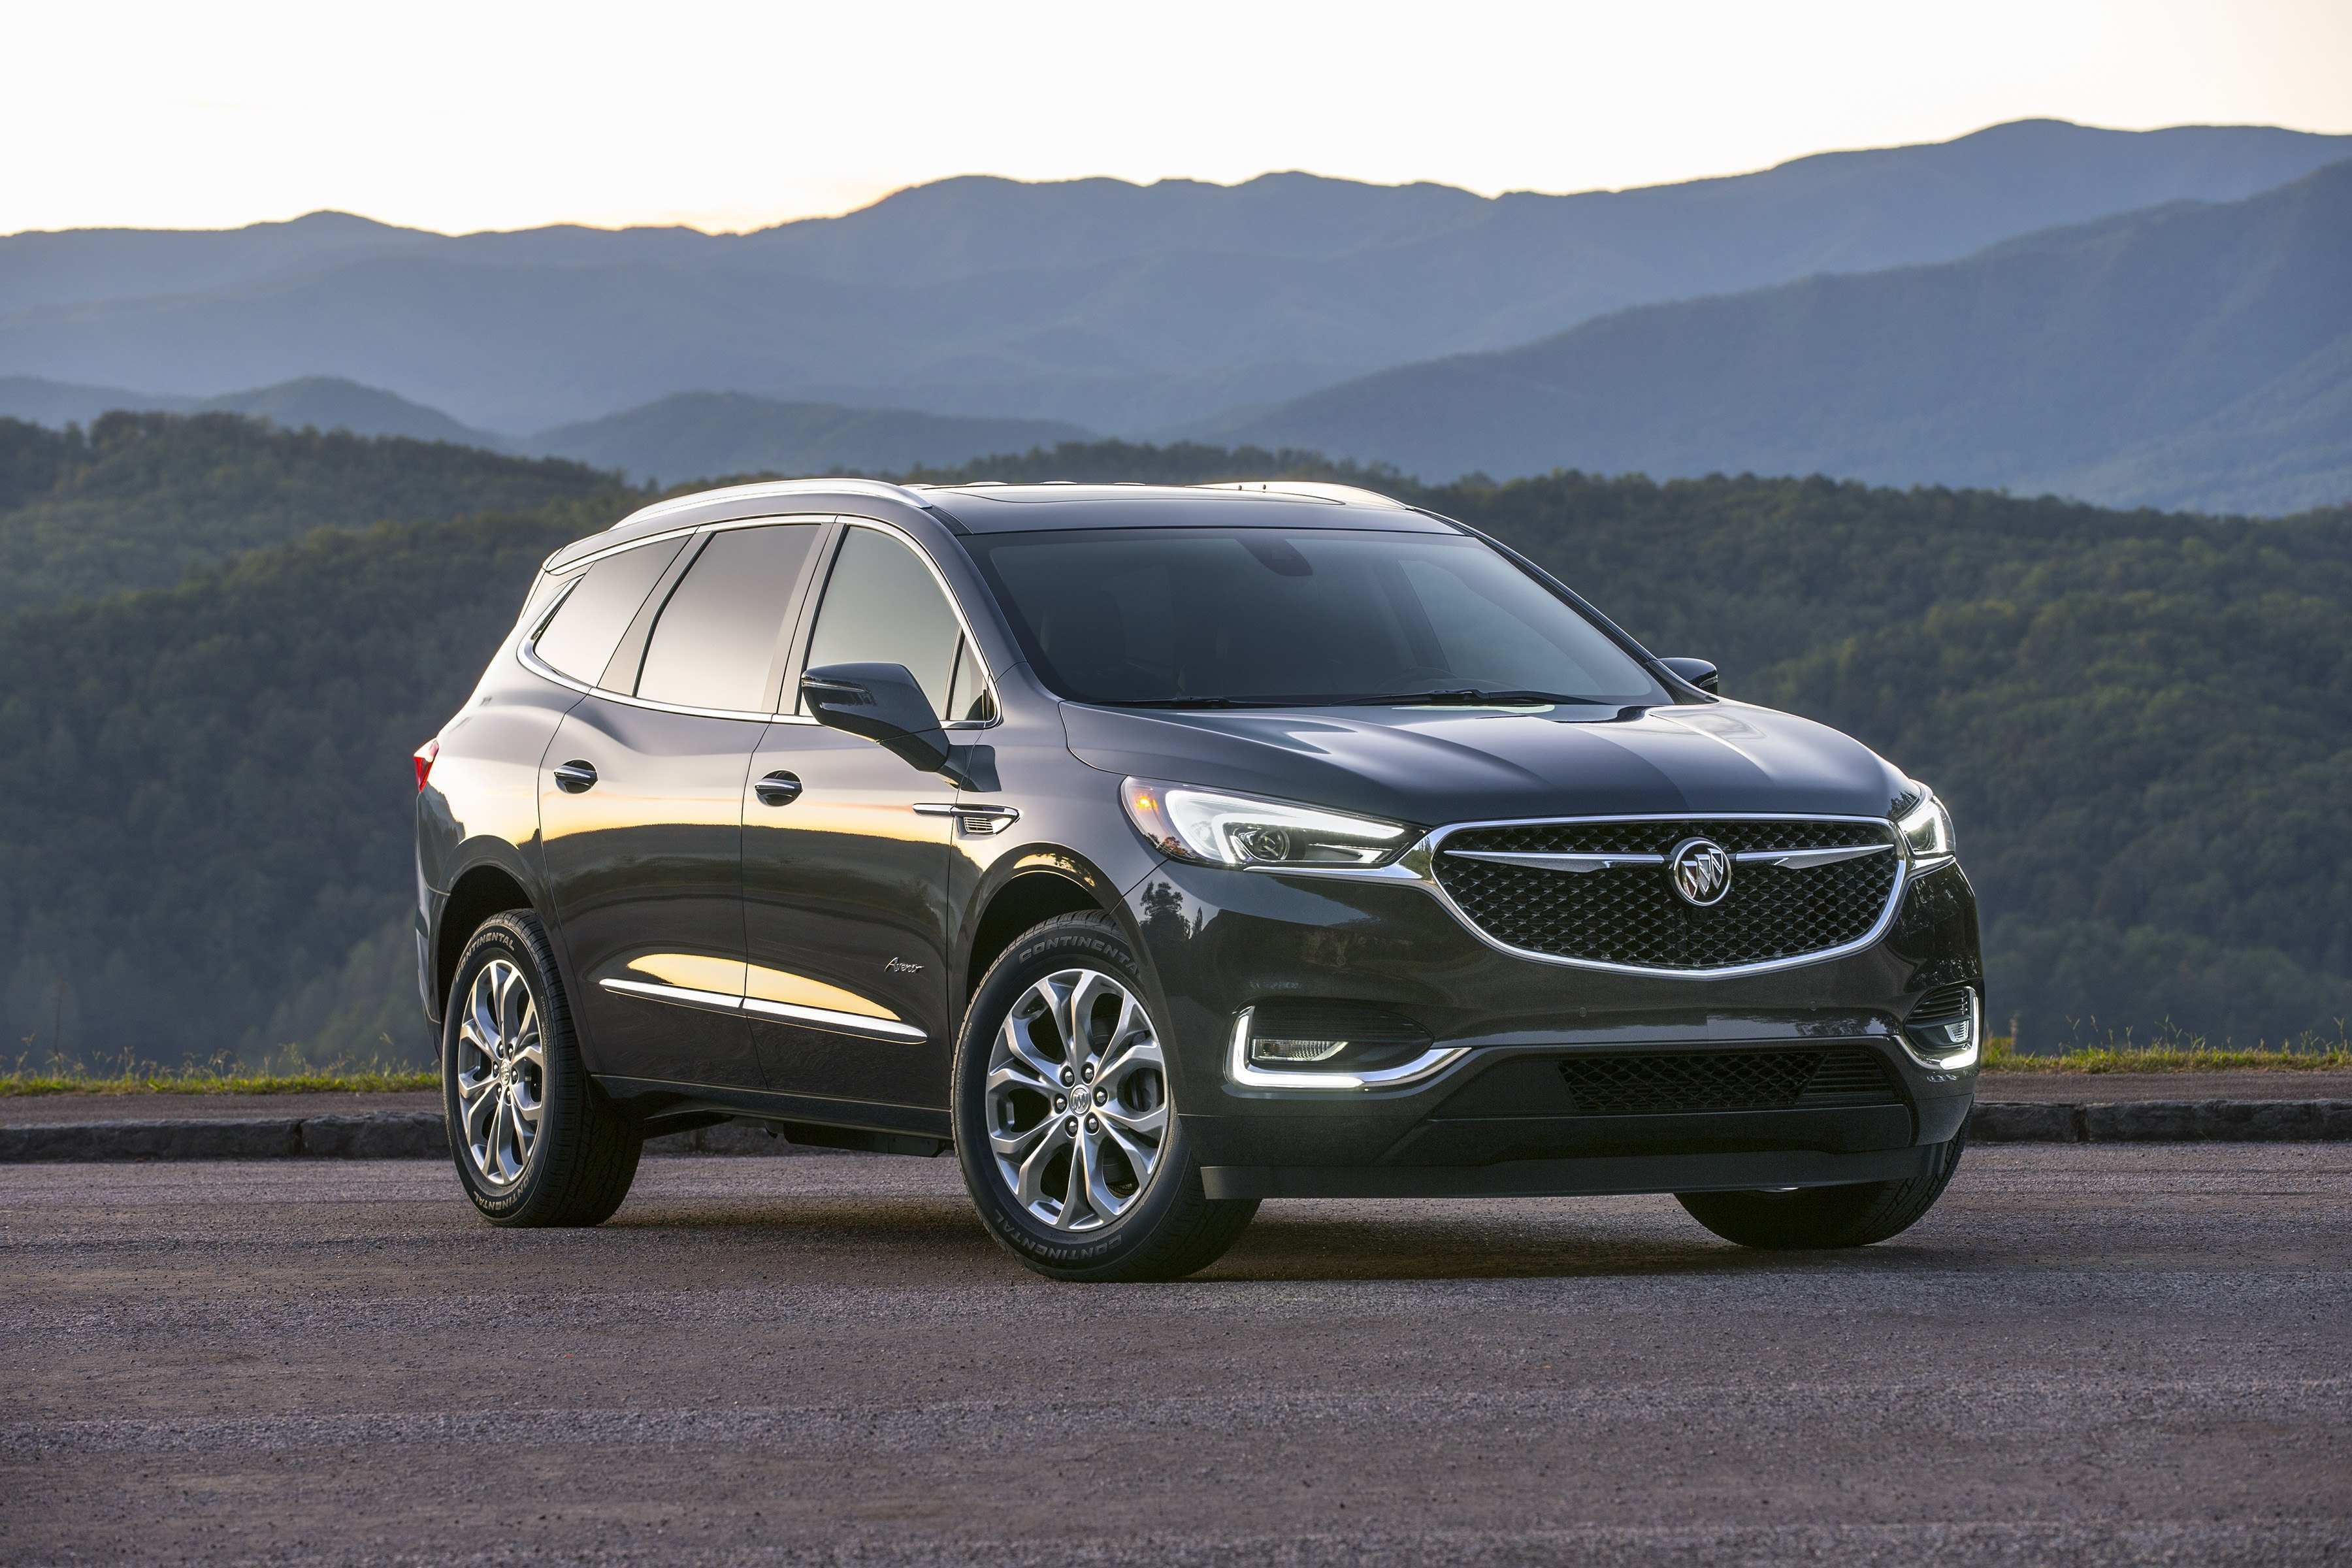 82 New 2019 Buick Enclave Towing Capacity Specs Pictures for 2019 Buick Enclave Towing Capacity Specs